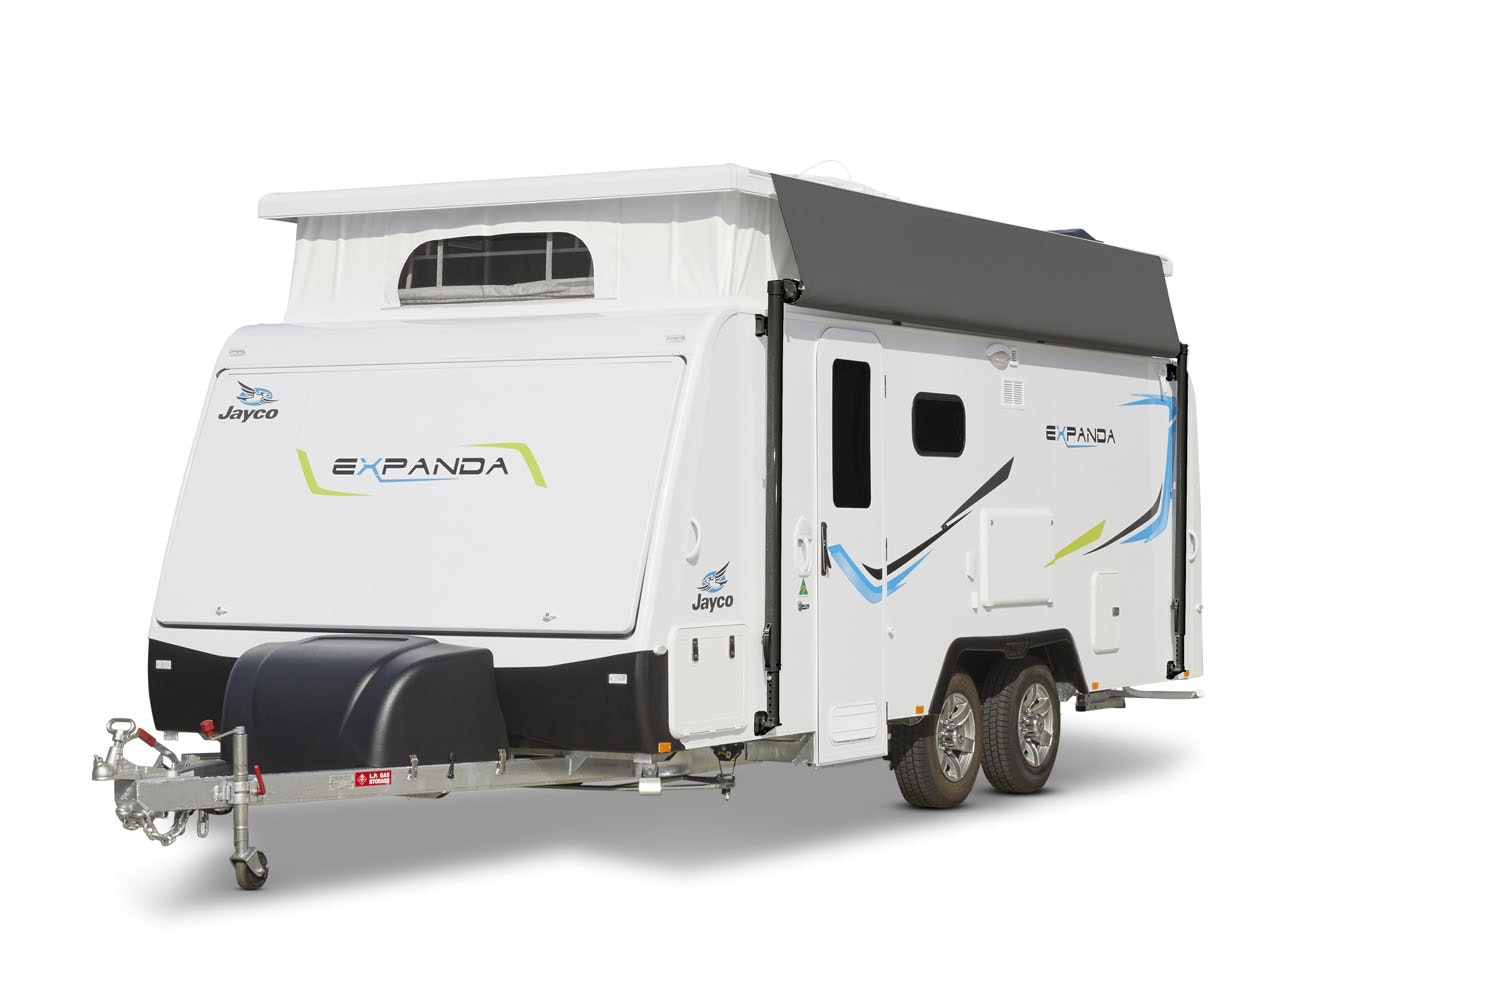 Jayco Expanda Pop Top